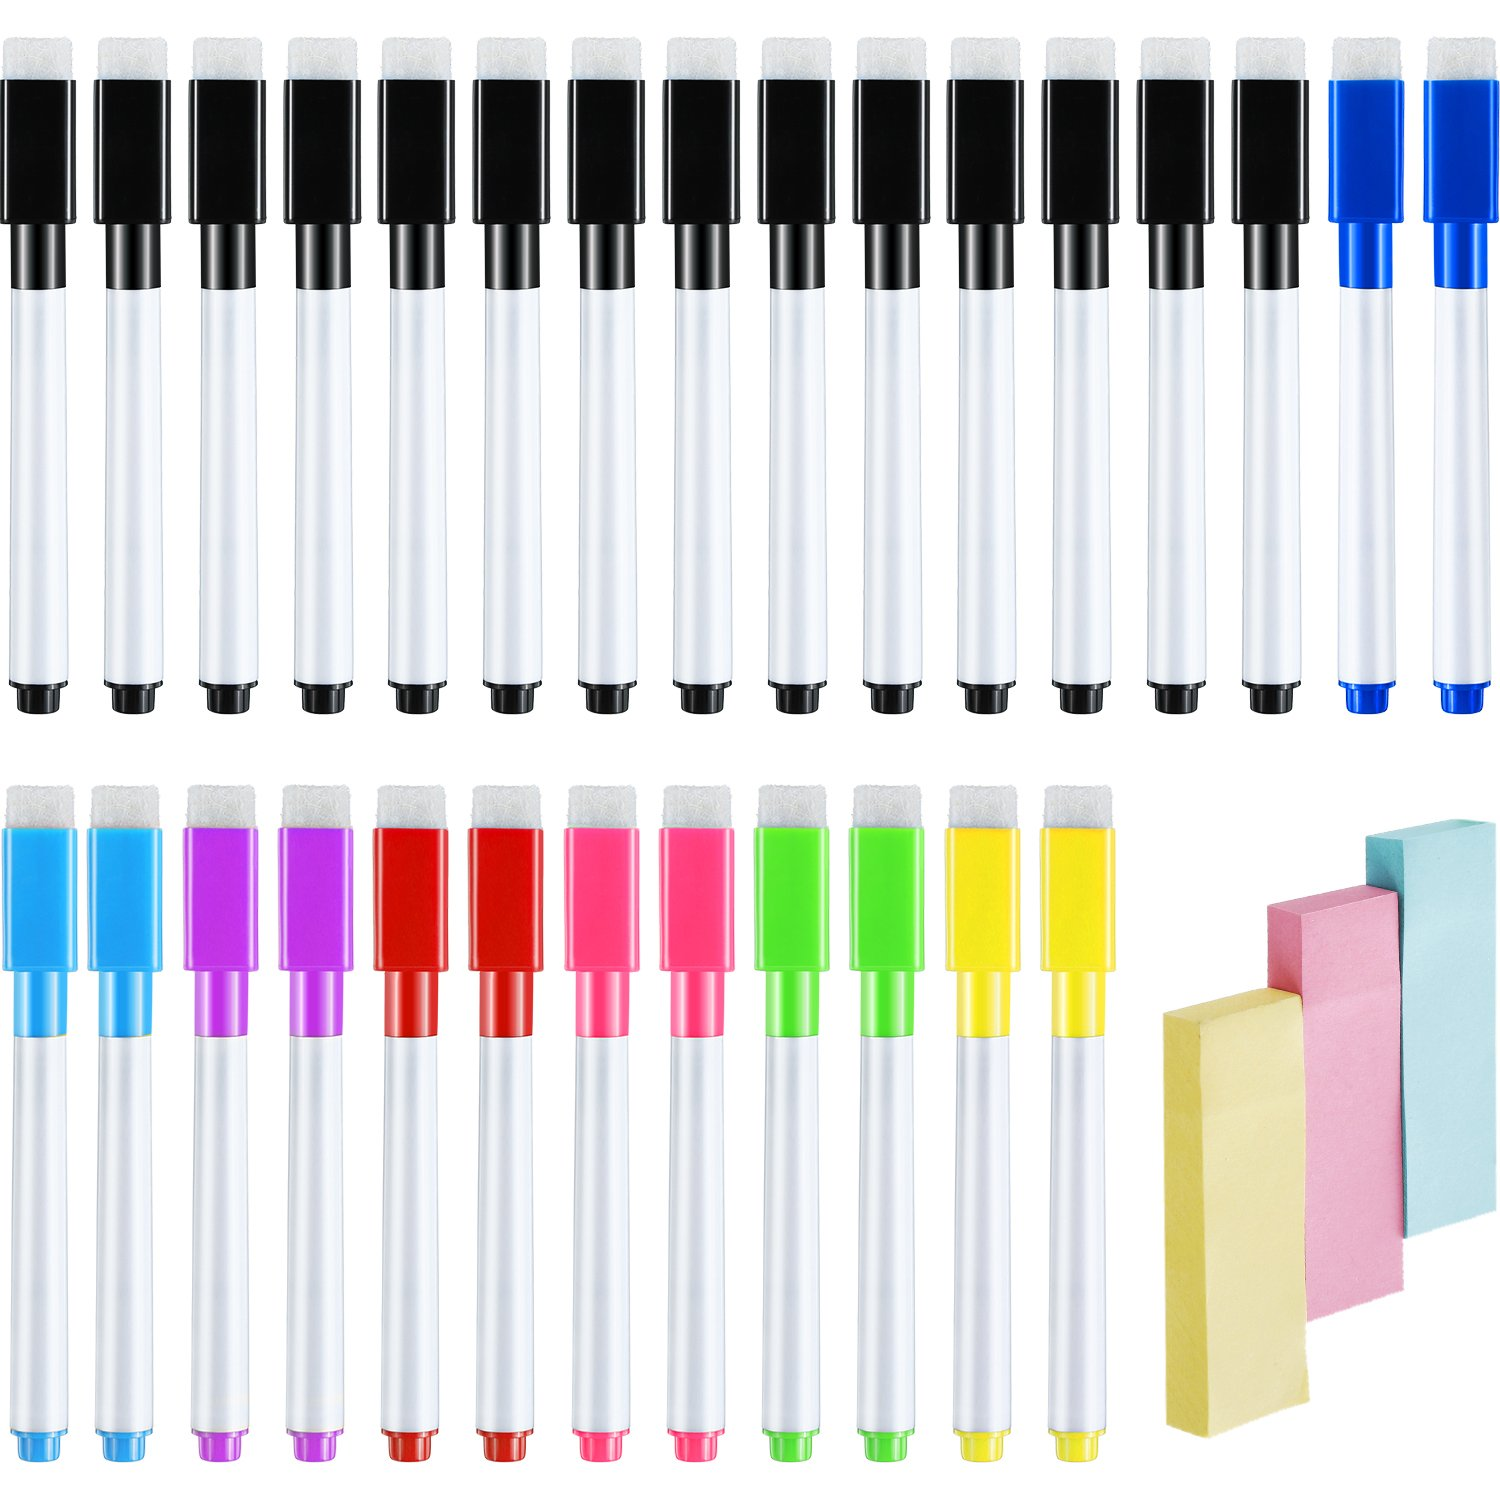 Jovitec 28 Pieces Dry Erase Whiteboard Marker Pens, Black Colorful Low Odor Erasable Pens with Built-in Eraser and 300 Sheets Trisect Sticky Notes